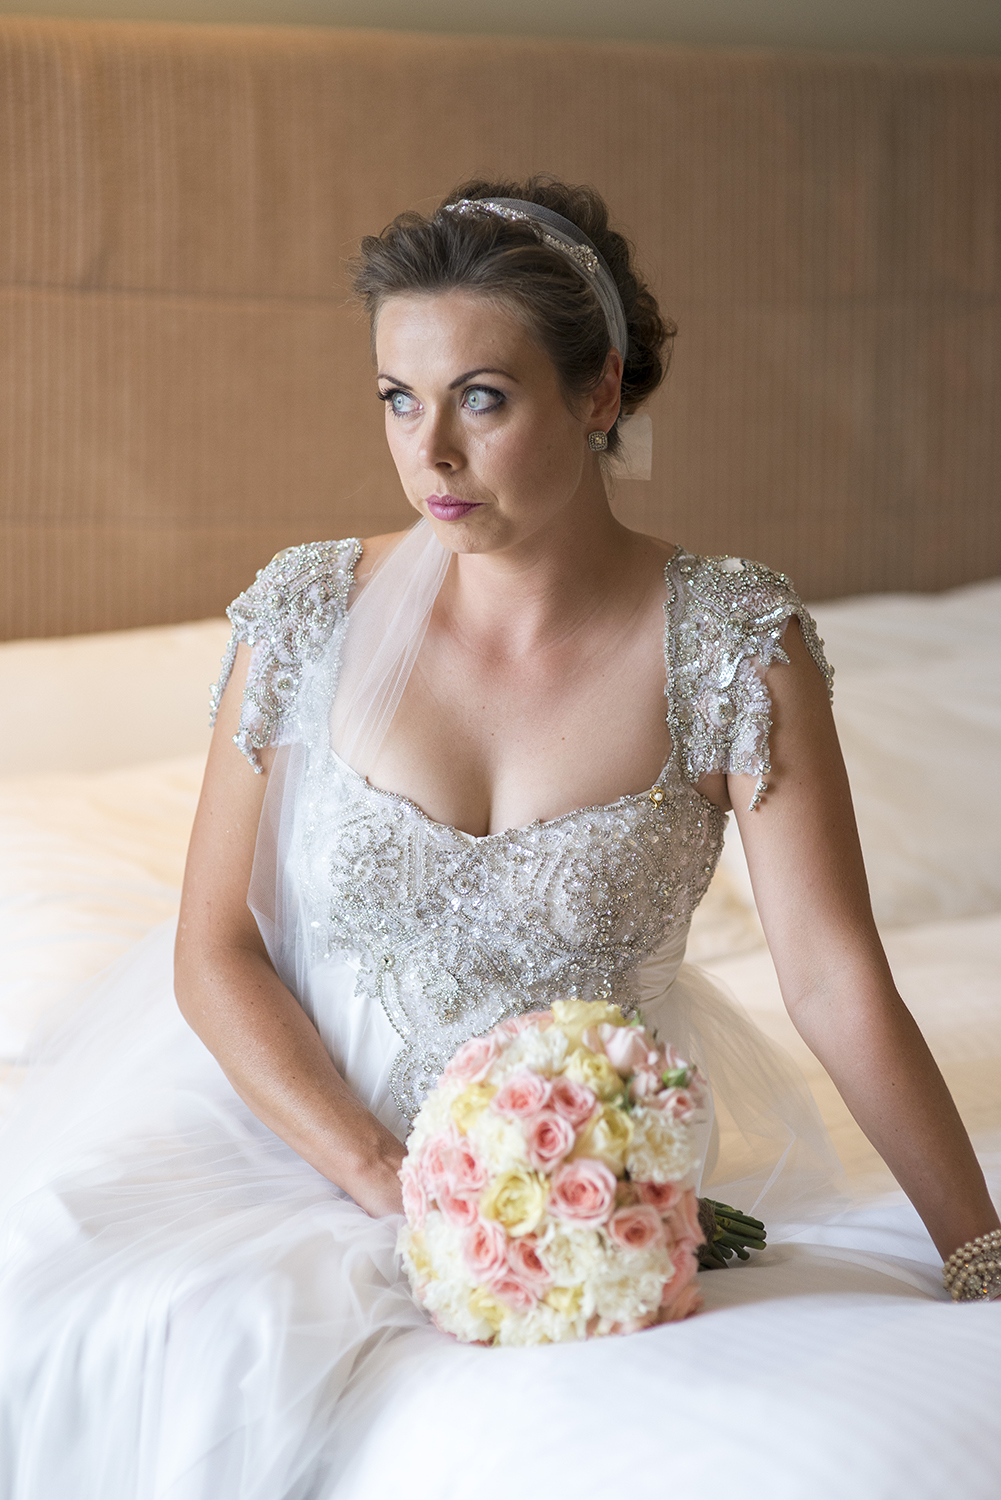 Our Wedding0203.jpg